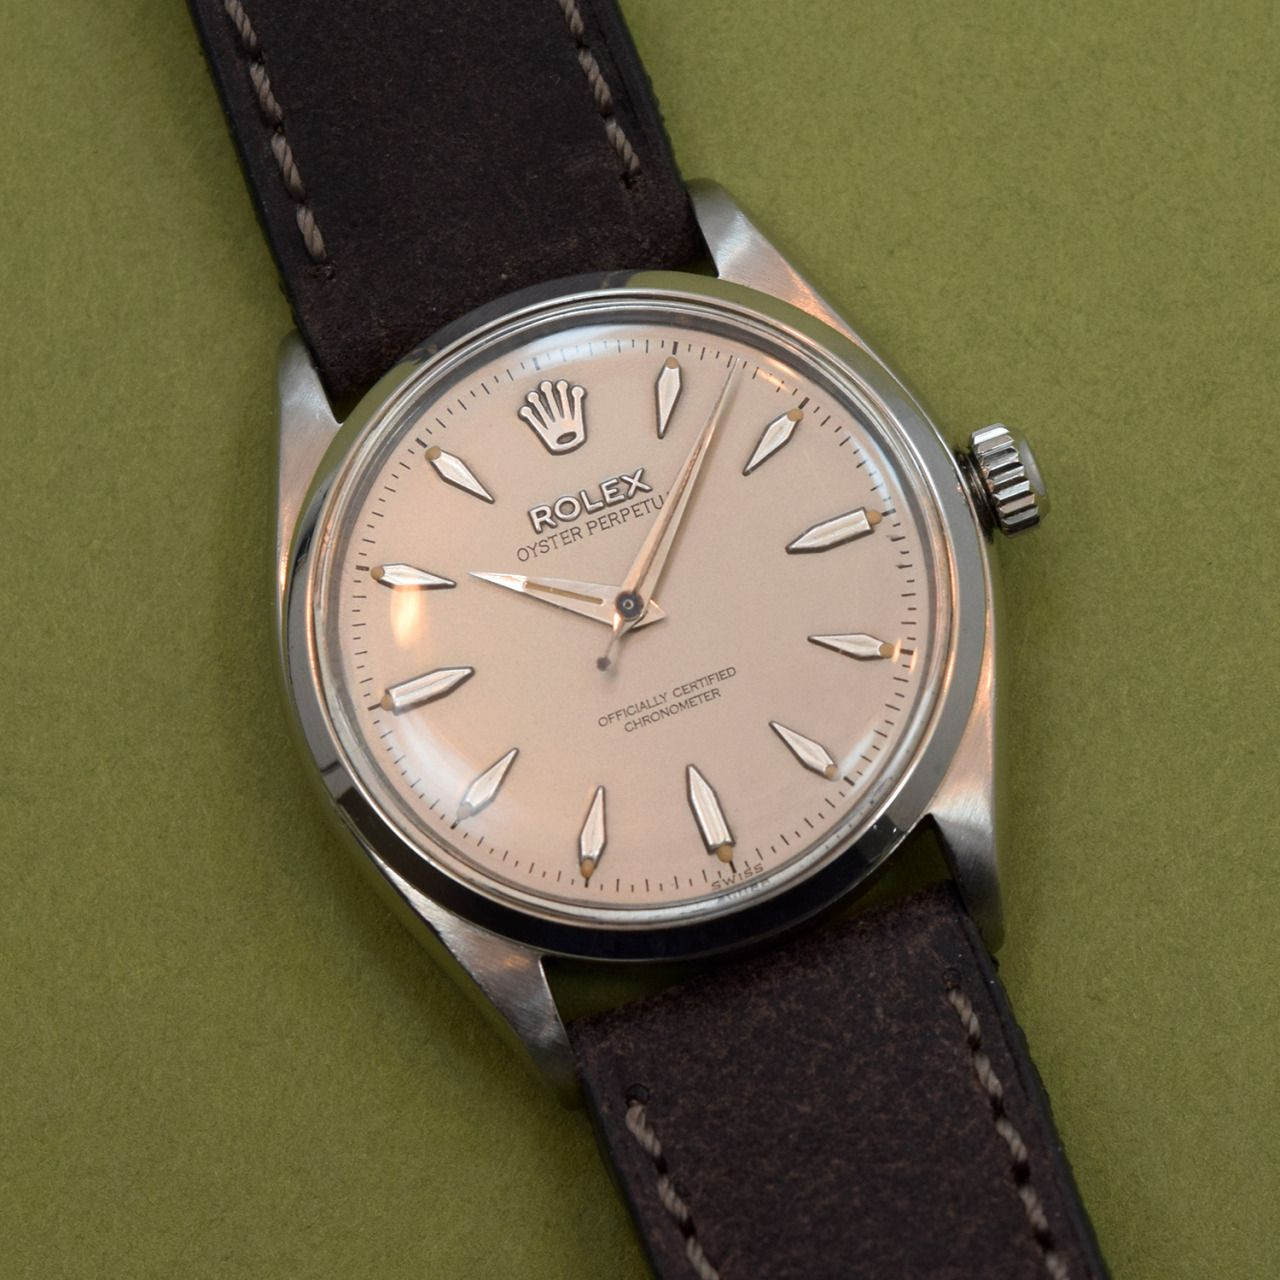 """A 1958 vintage Rolex Oyster Perpetual Reference 6564 that comes equipped with a stainless steel case, a silver/gray dial with applied steel, arrow markers, and a 25-jewel, caliber 1030 automatic movement. This example features a 19mm, Dark Chocolate """"Rough-out"""" Leather watch strap. (Store Inventory # 10110, listed at $3100). #rolex #oyster #perpetual #style #dapper #silver #steel #mens #wristwatch #watches #classic #timepieces #watch #stawc"""